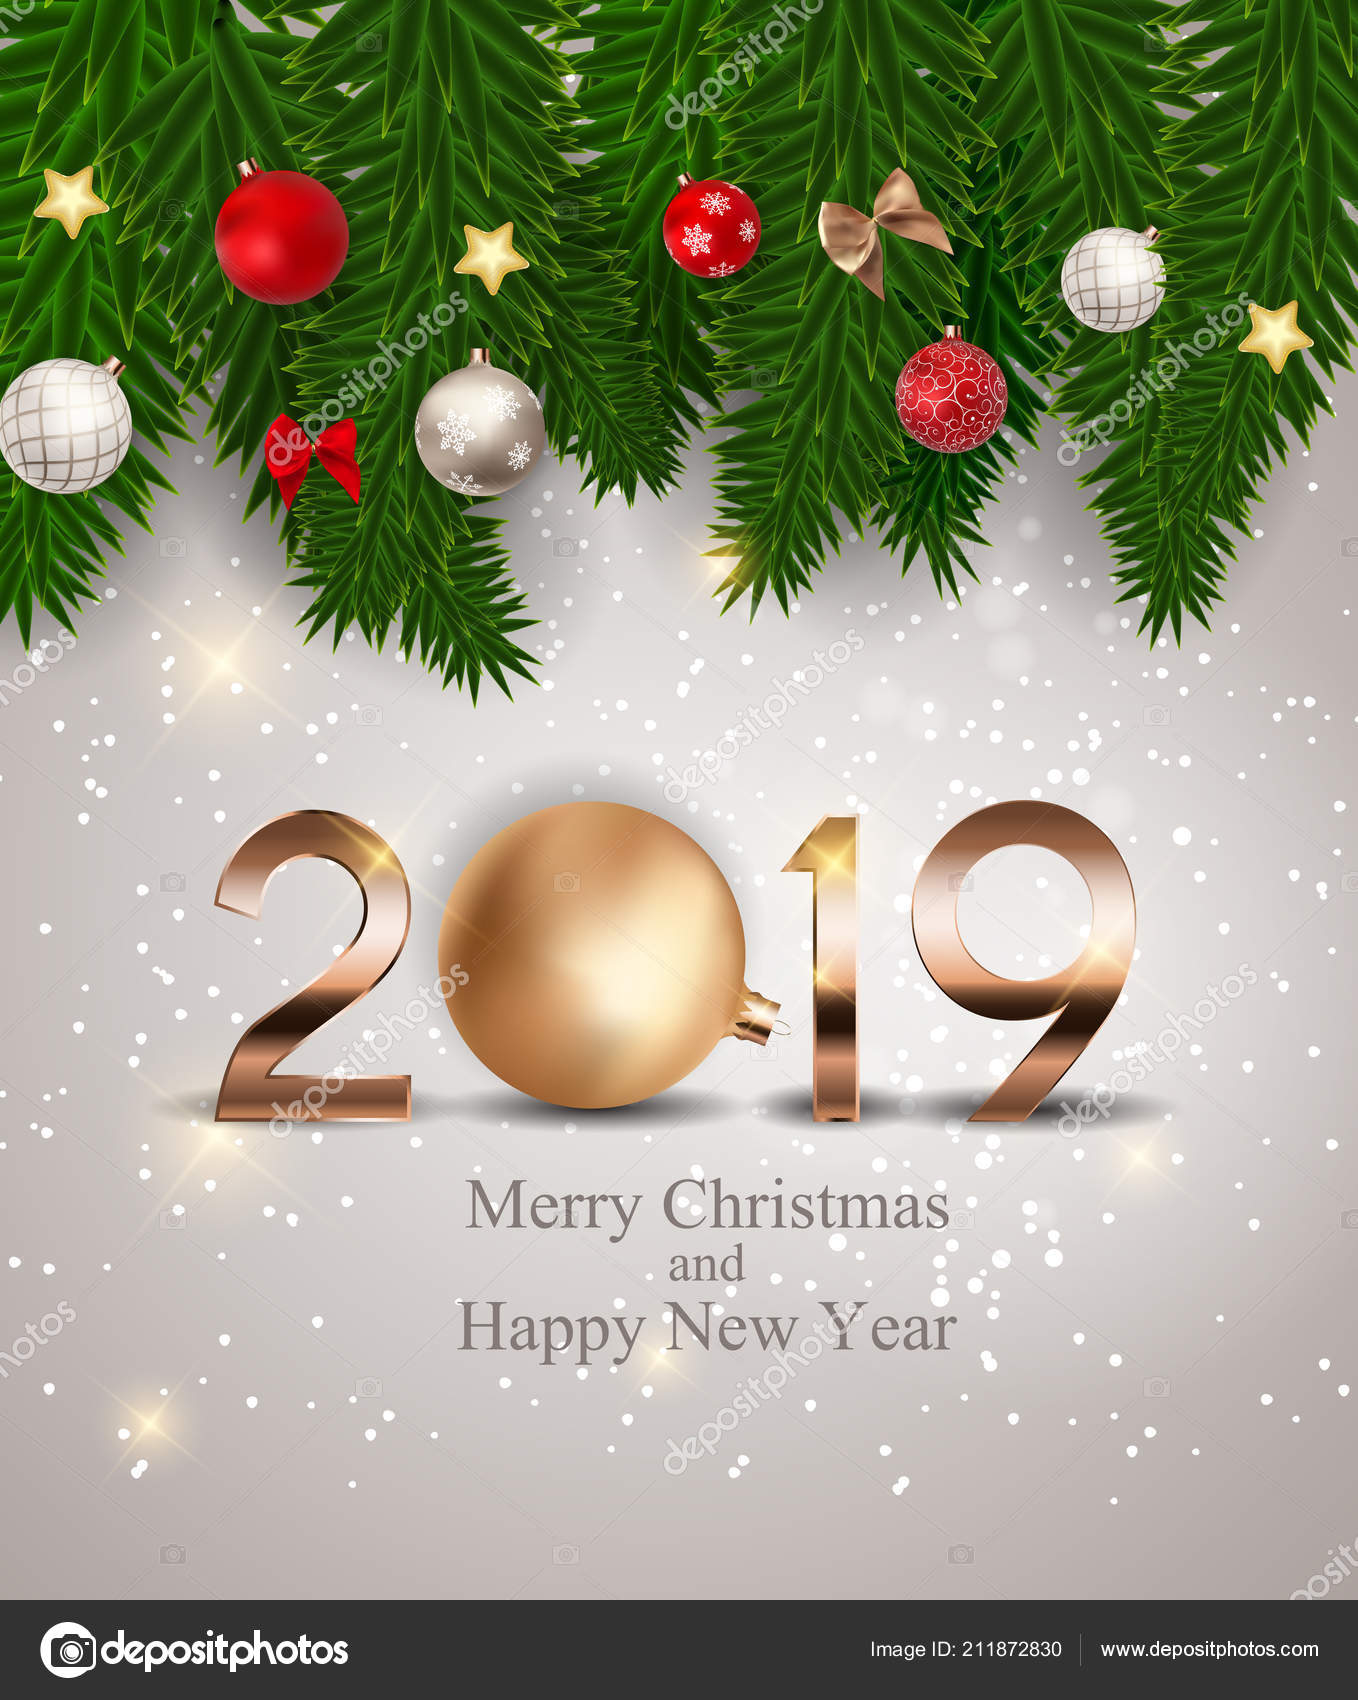 2019 new year background with christmas ball vector illustration eps10 vector by yganko